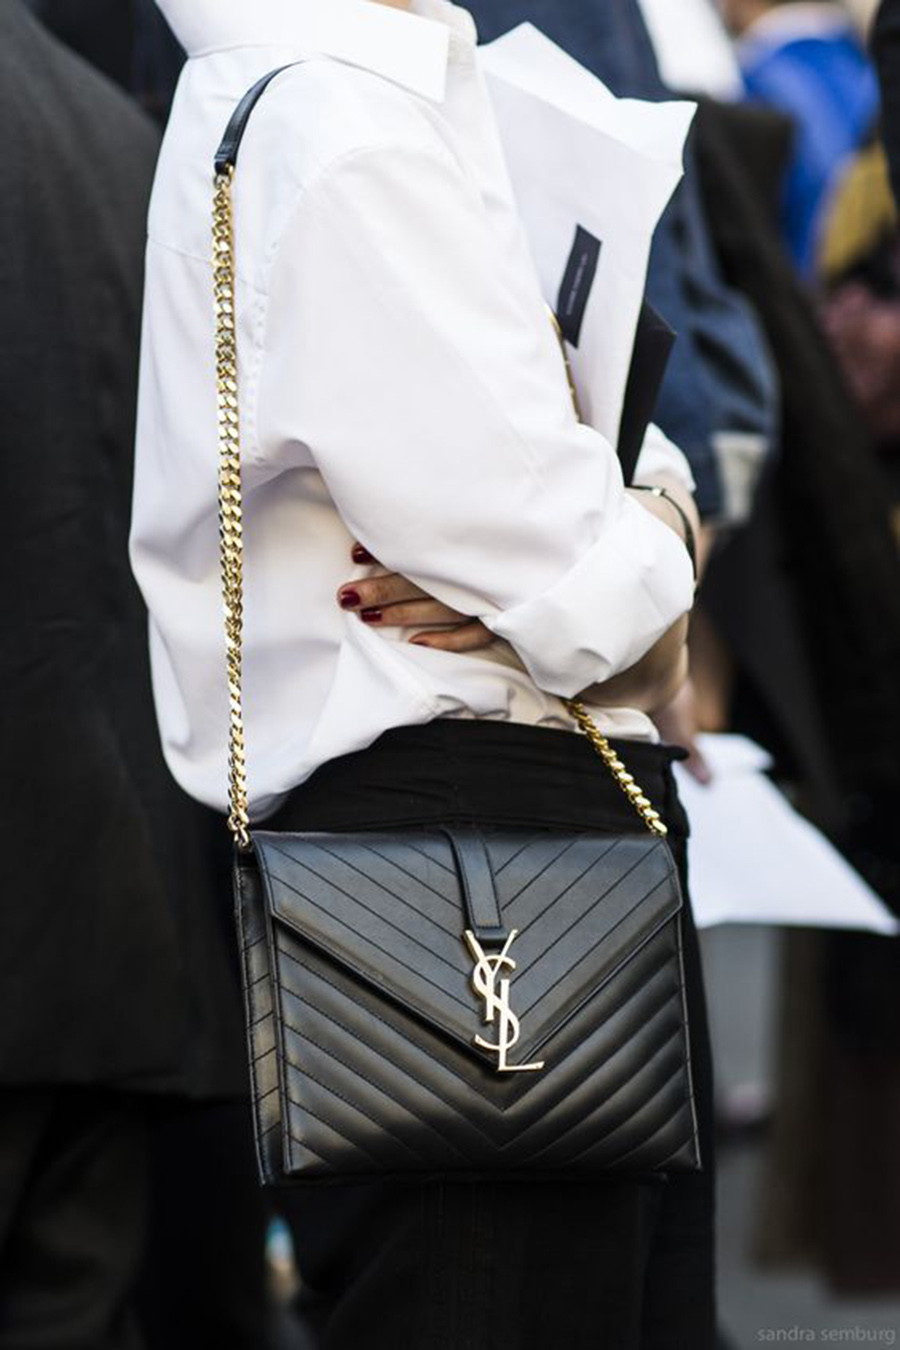 Luxury Crossbody Handbags You Can't Help But Crush On!